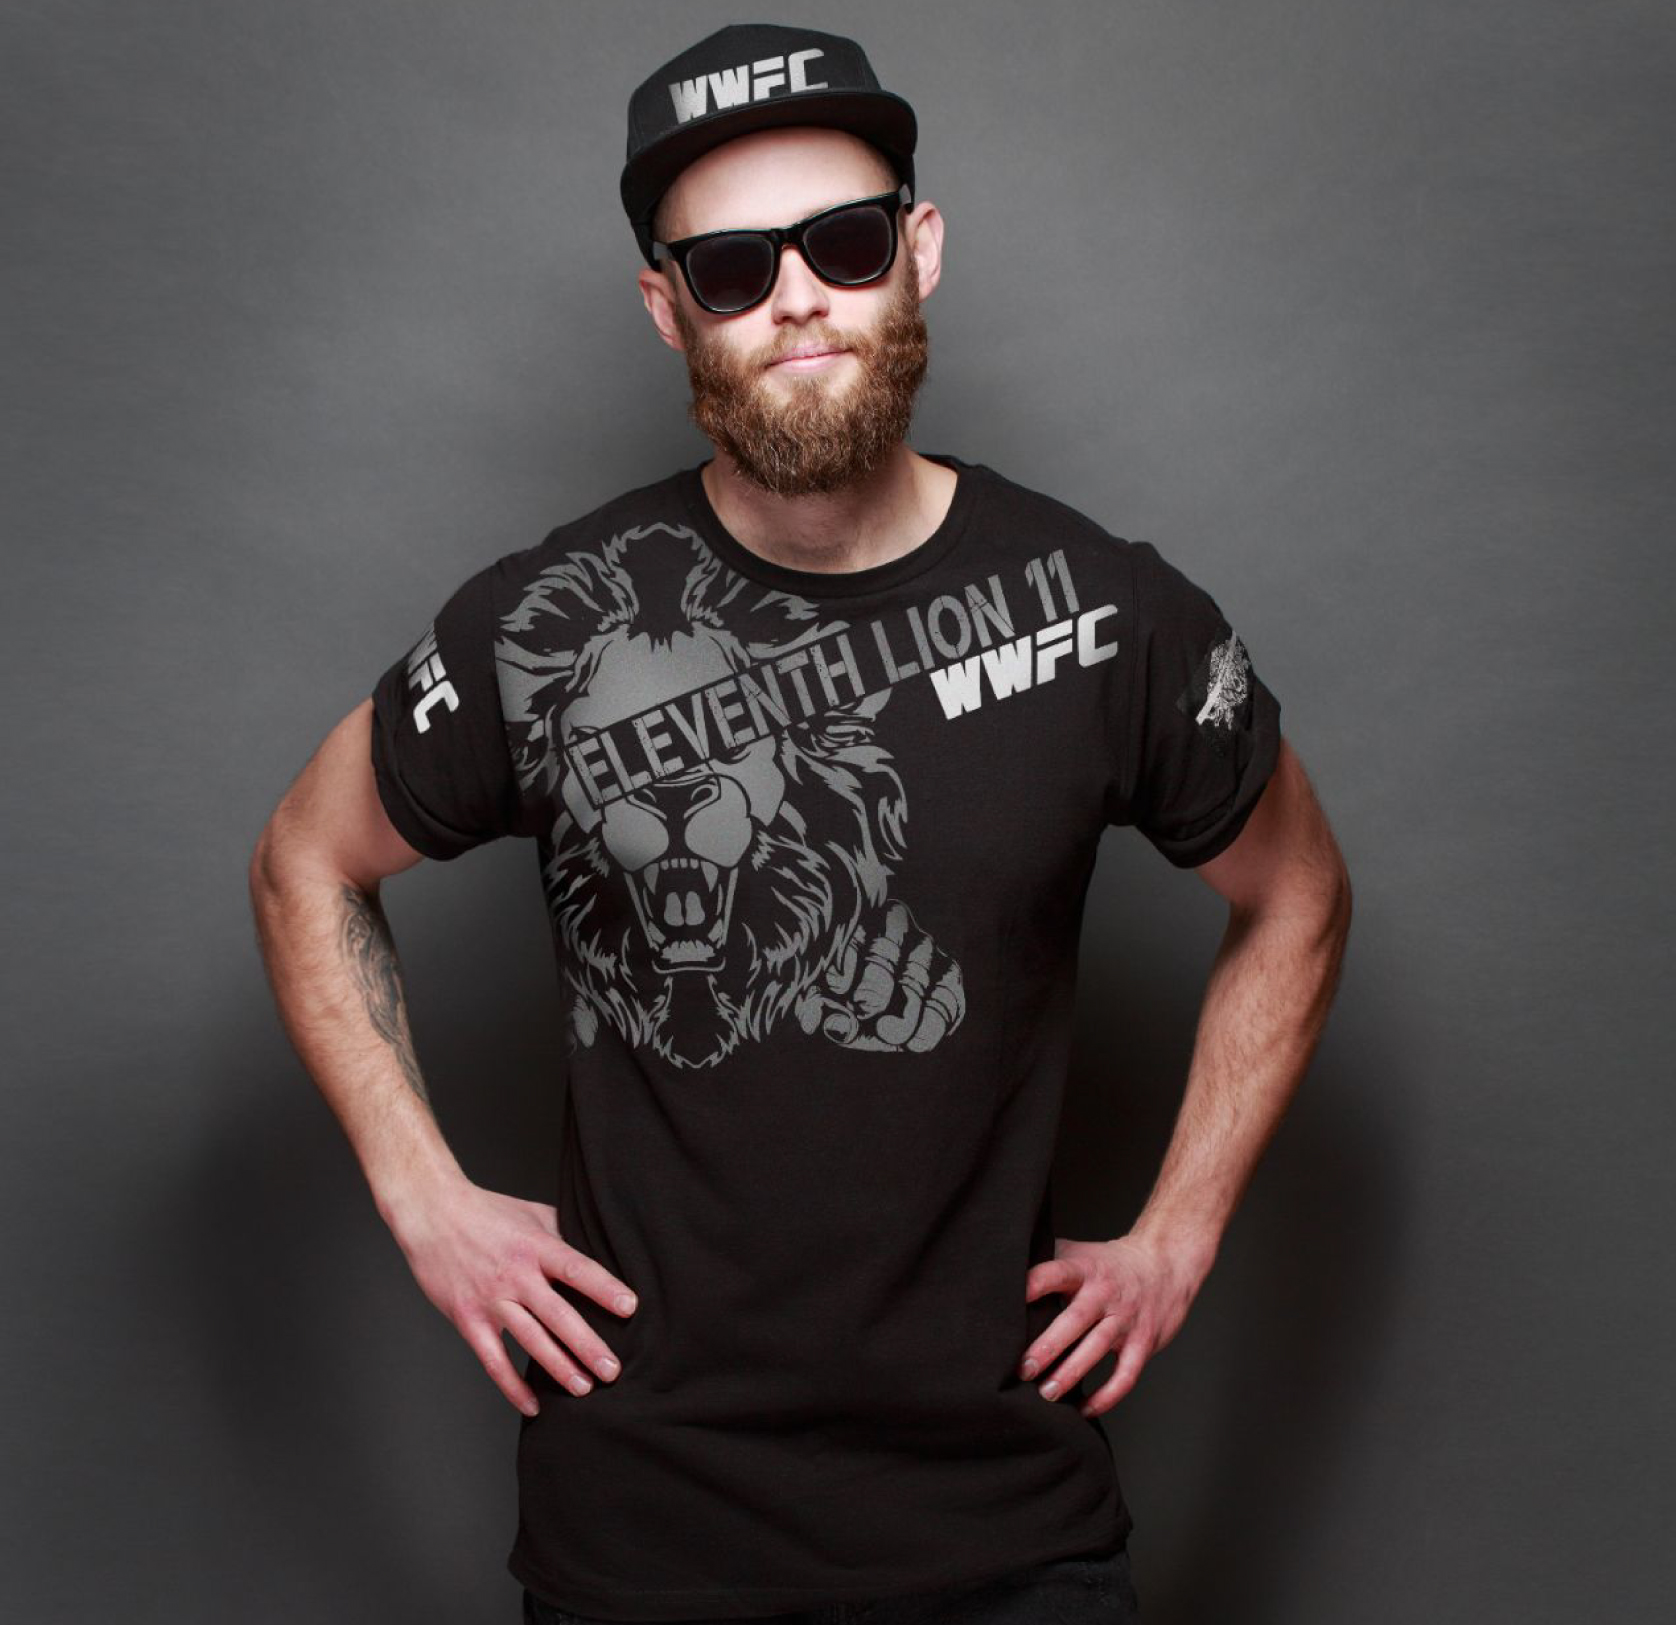 T-shirt man WWFC Lion fist